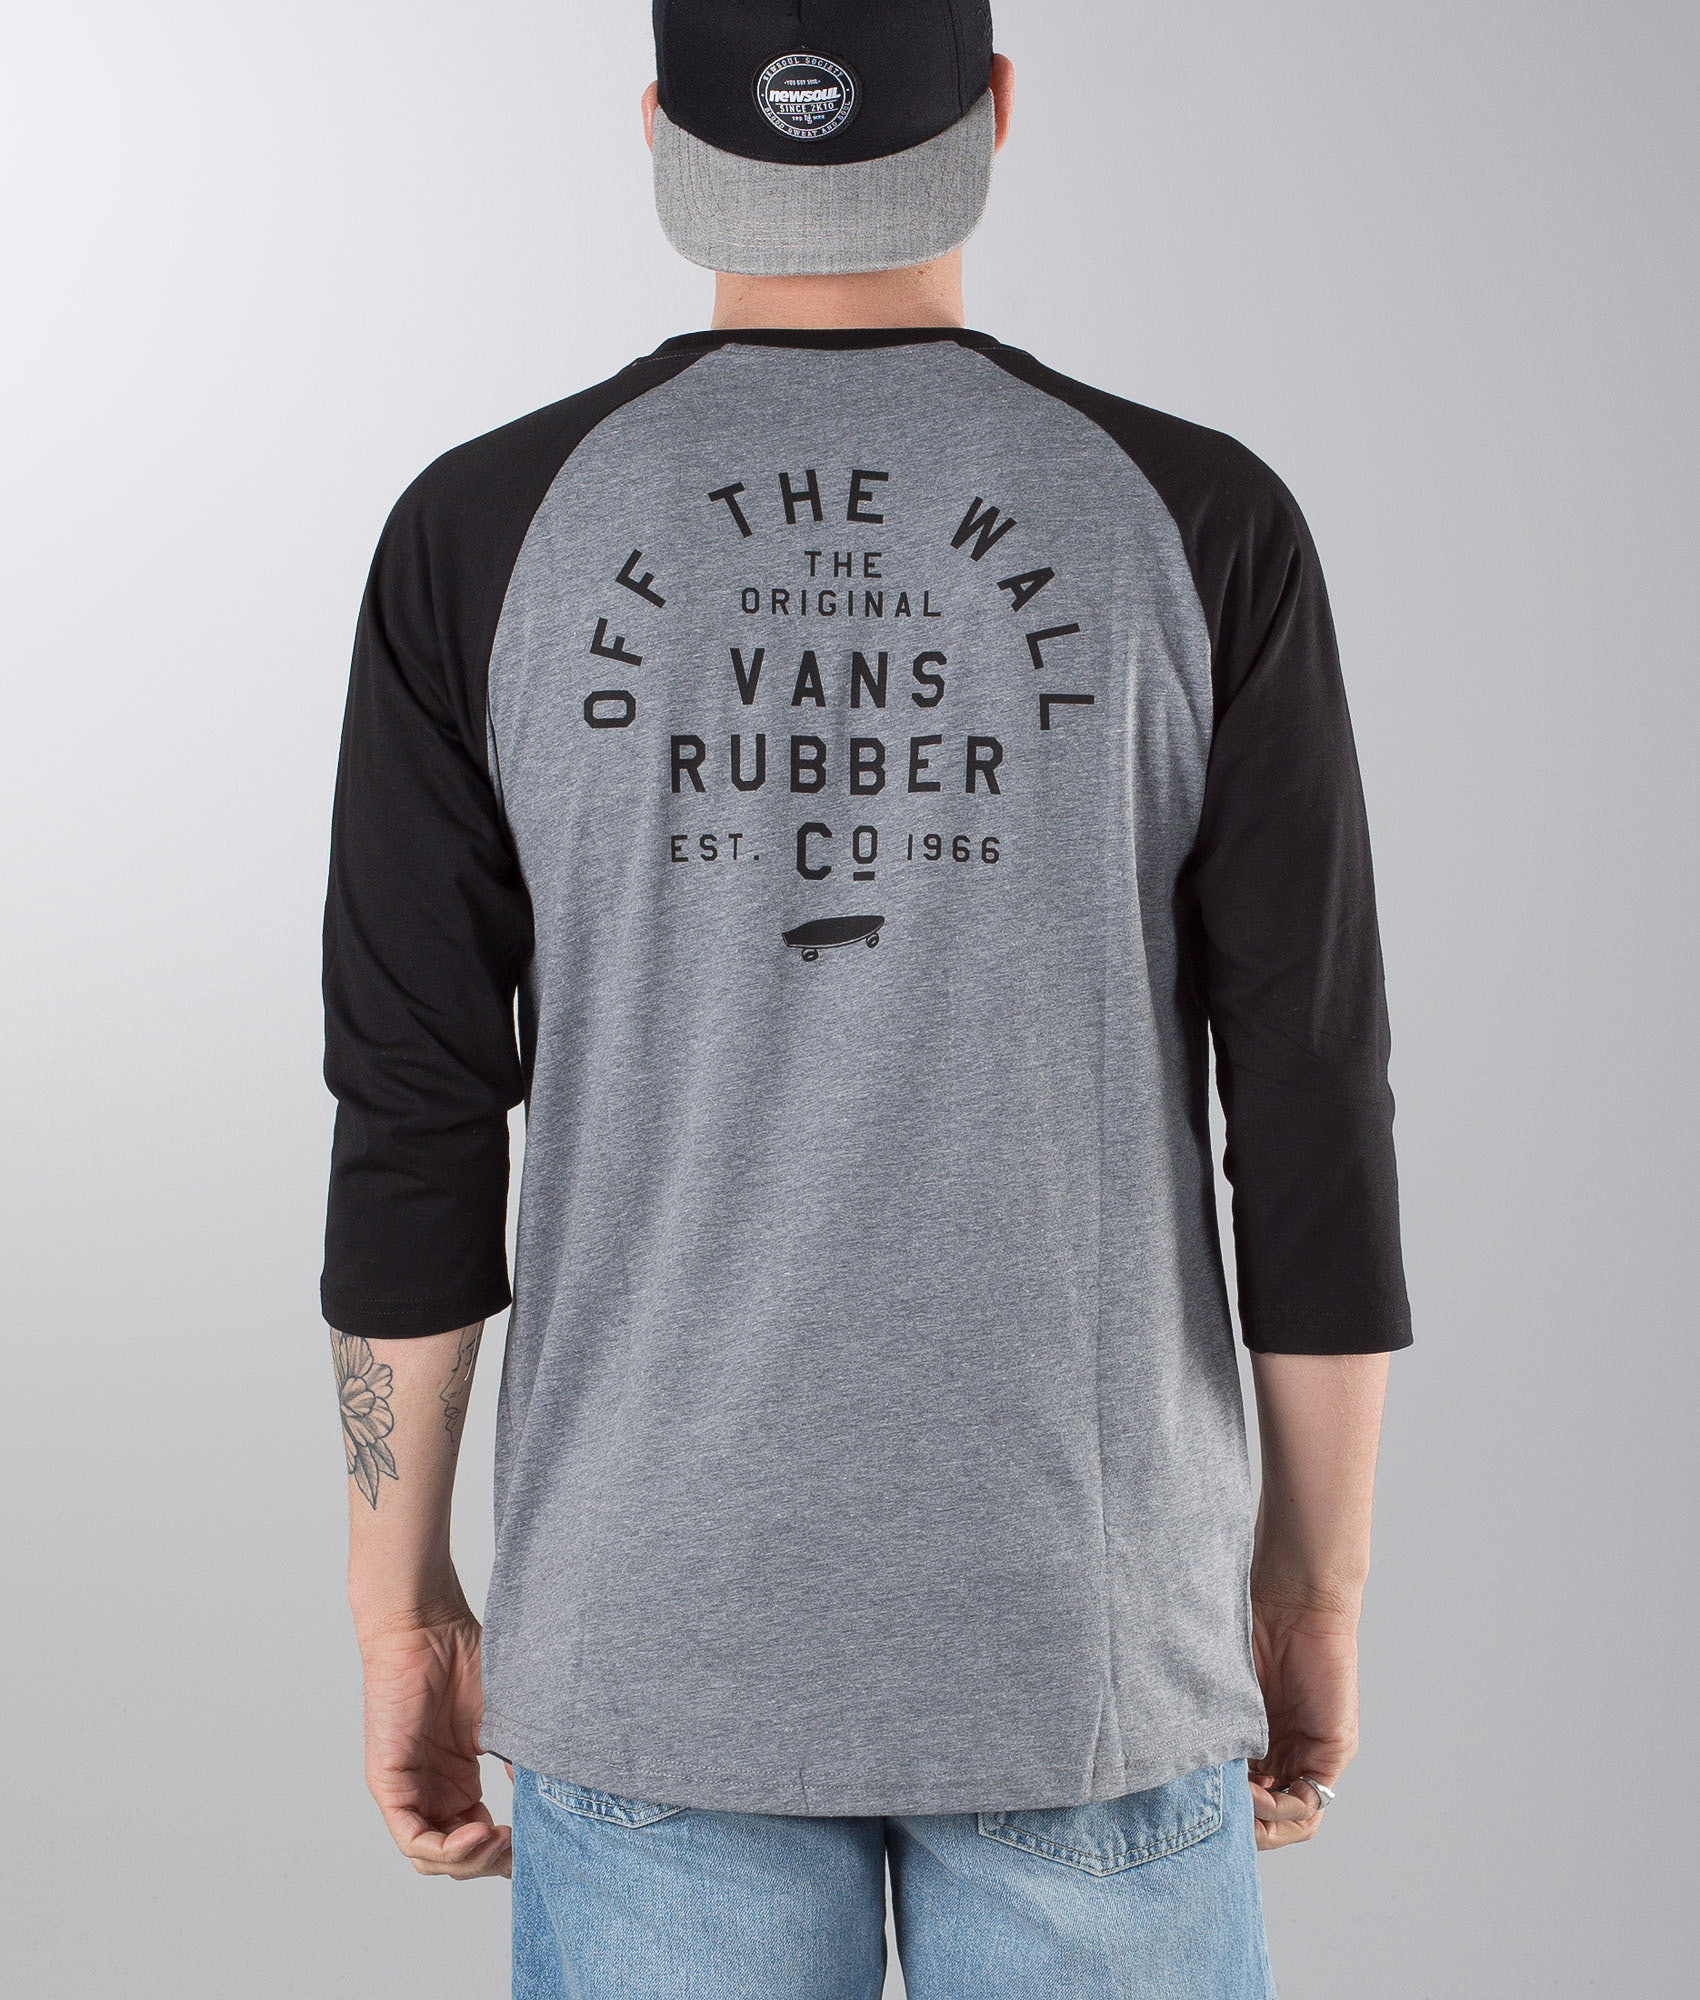 Vans Stacked Rubber Raglan T-shirt Heather Grey Black - Ridestore.com c8f13bc90